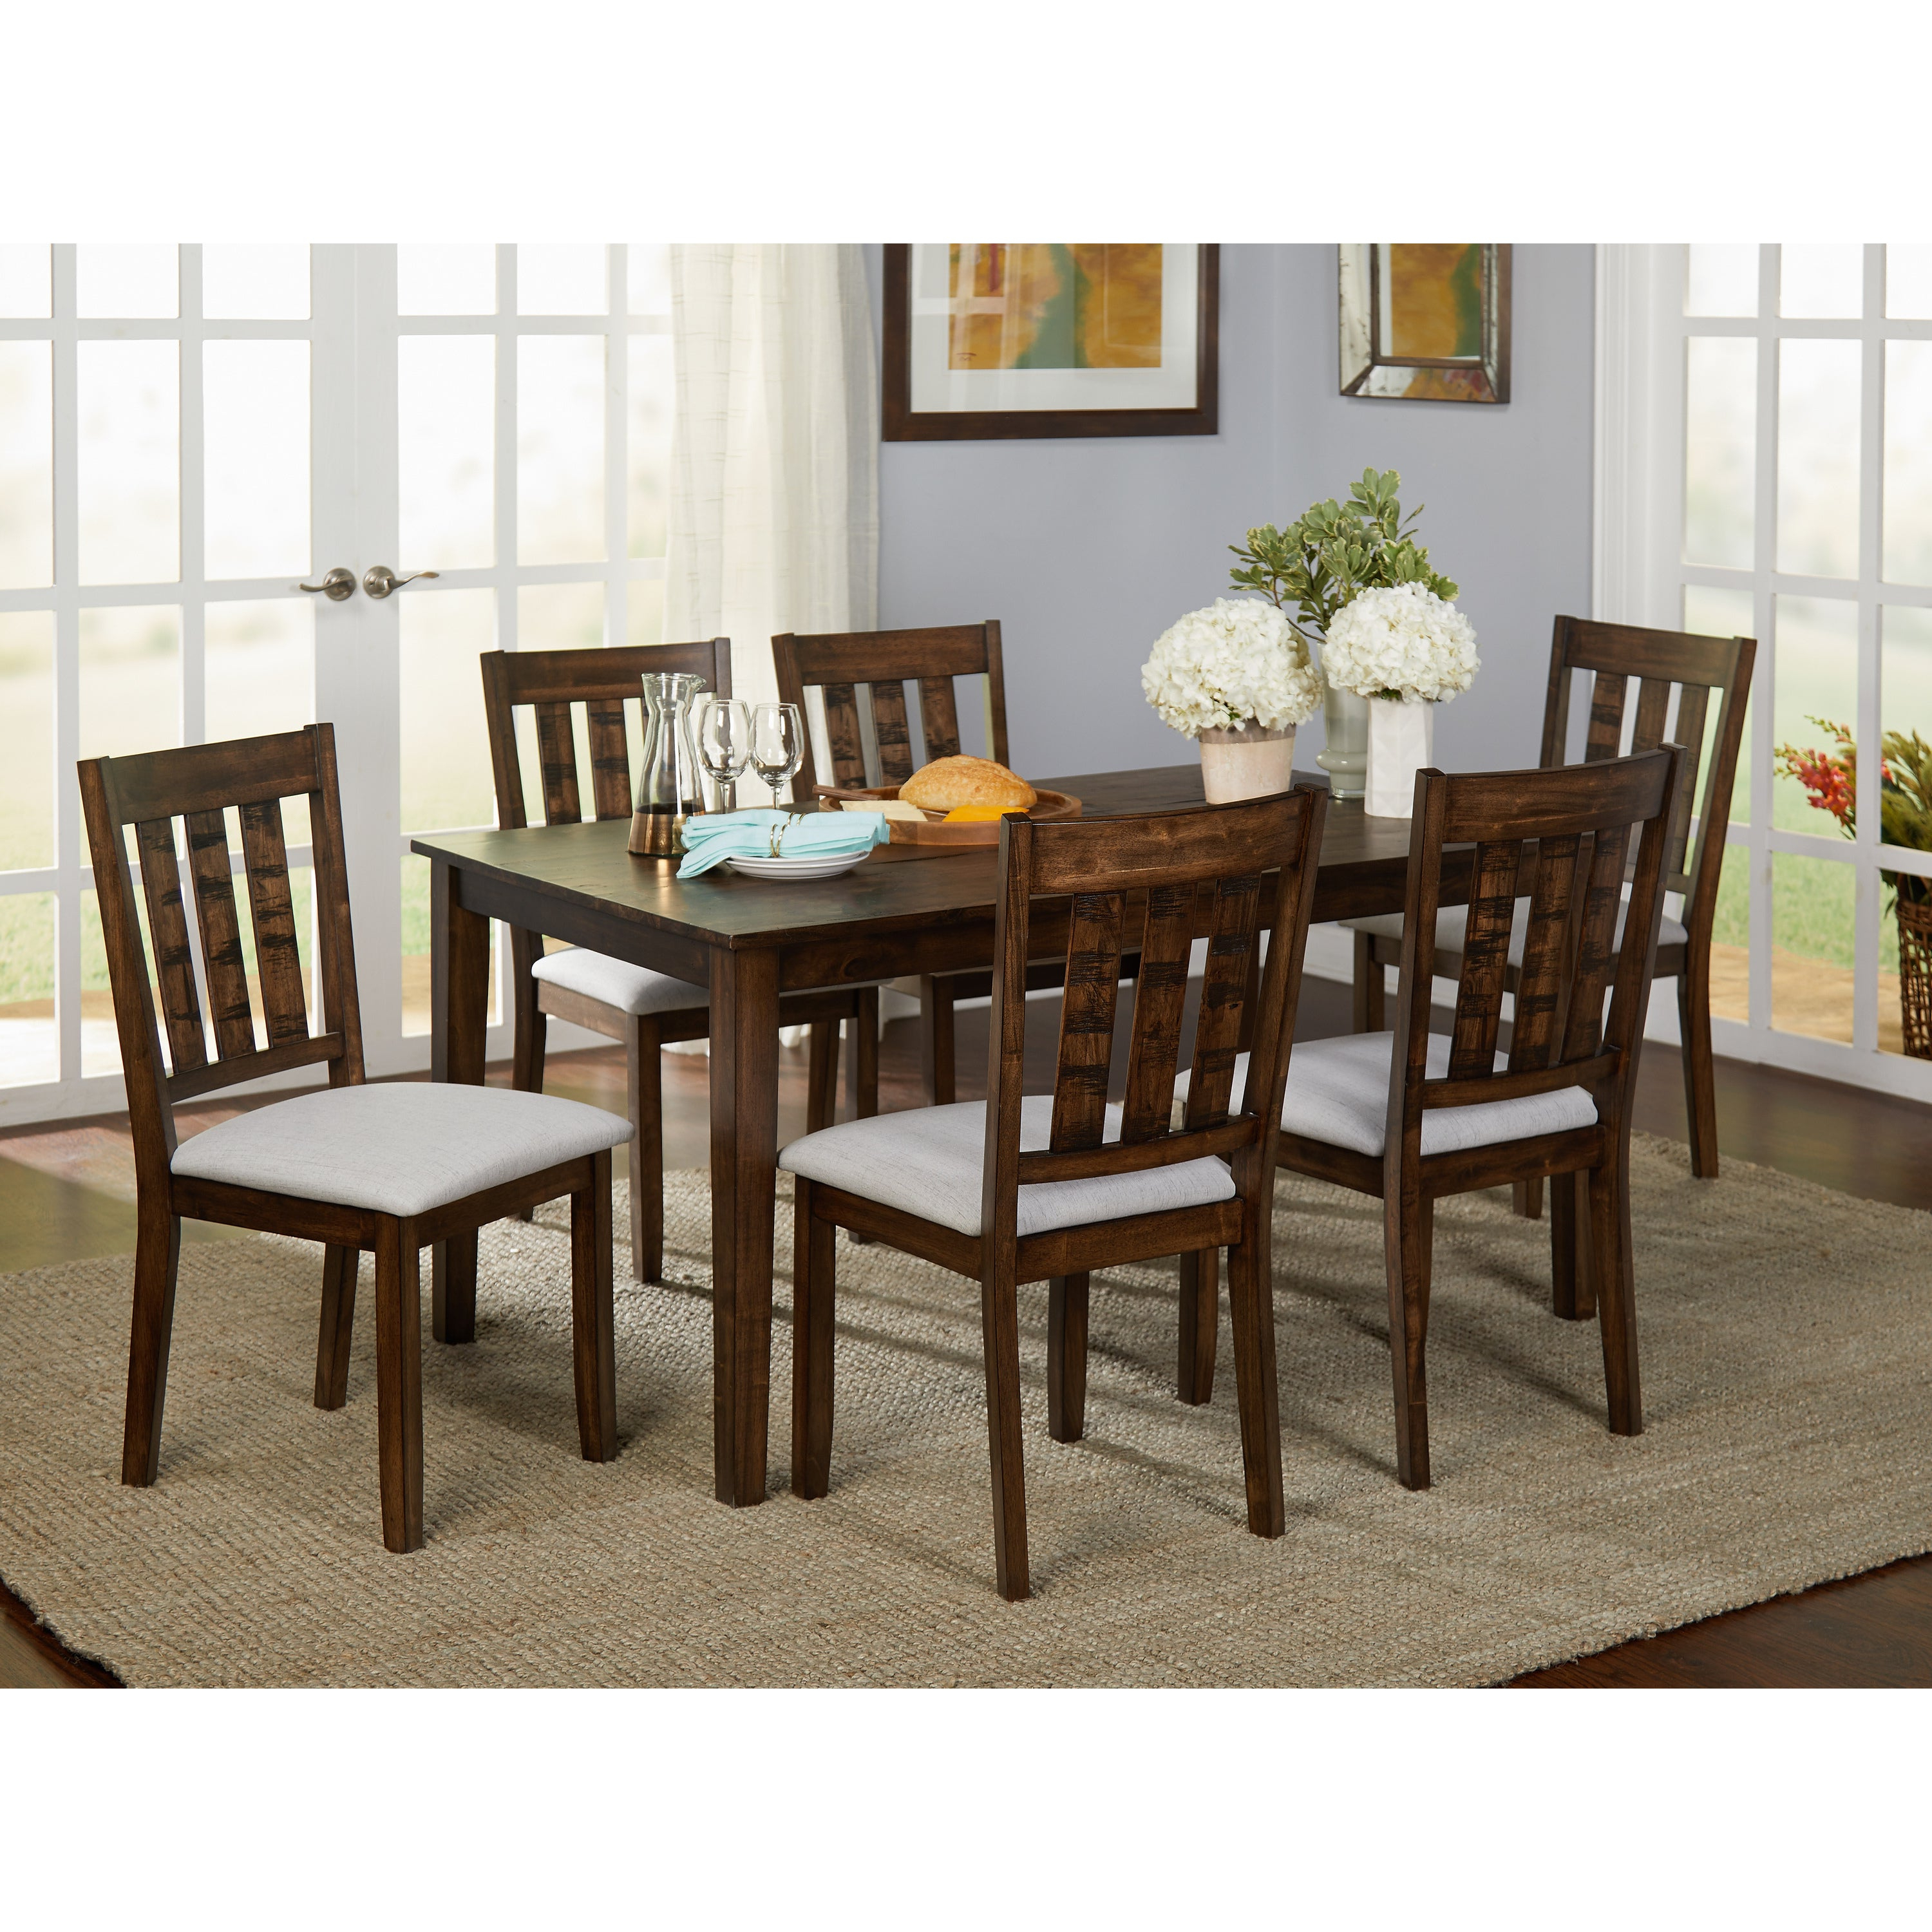 Our Pertaining To Cincinnati 3 Piece Dining Sets (Gallery 6 of 20)